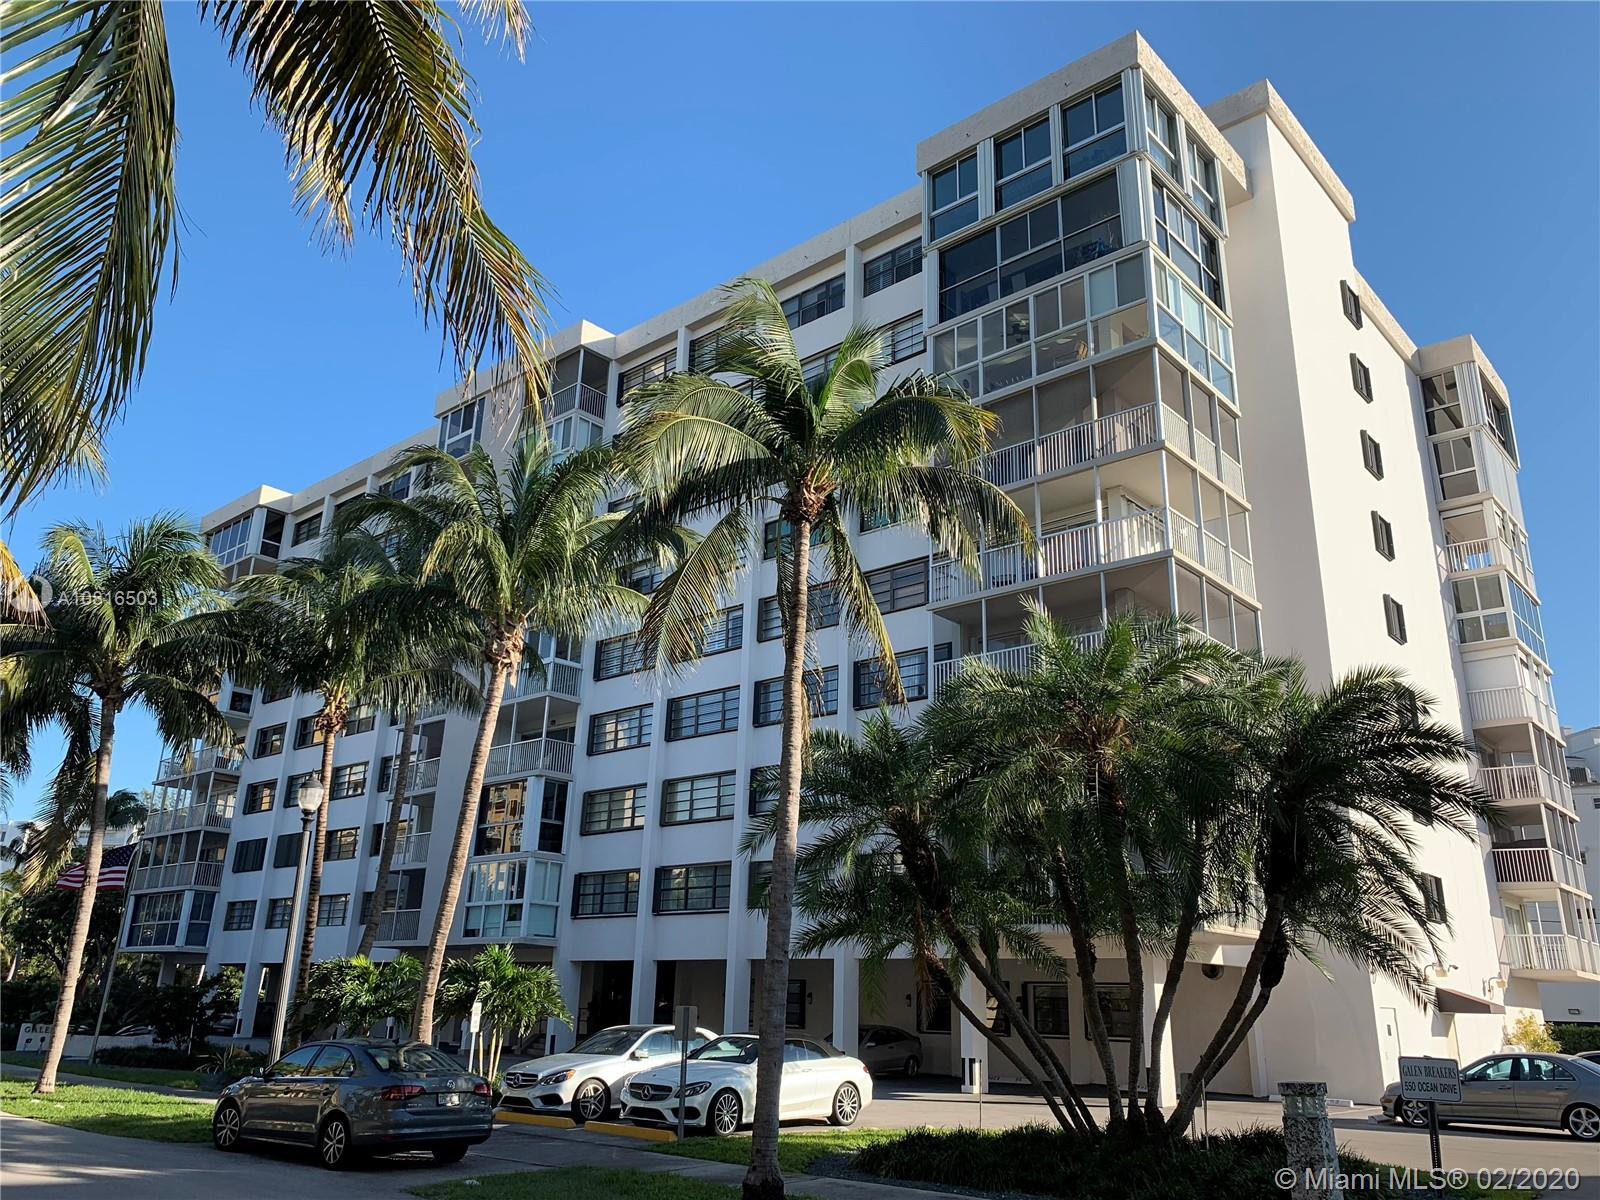 CORNER UNIT, WITH  WRAP AROUND BALCONY 2/2, OVERLOOKING GALEN DRIVE, KEY BISCAYNE,LARGE SPACIOUS  BEDROOMS  AND CLOSETS. A WELL MANAGED BOUTIQUE BULDING, JUST A FEWSTEPS FROM THE BEACH, RESTAURANTS,  AND VERY CLOSE TO THE RITZ CARLTON. SUBJECT TO PROBATE COURT APPROVAL. PLEASE CALL LISTING AGENT, 24 HOUR NOTICE FOR APPOINTMENTS.